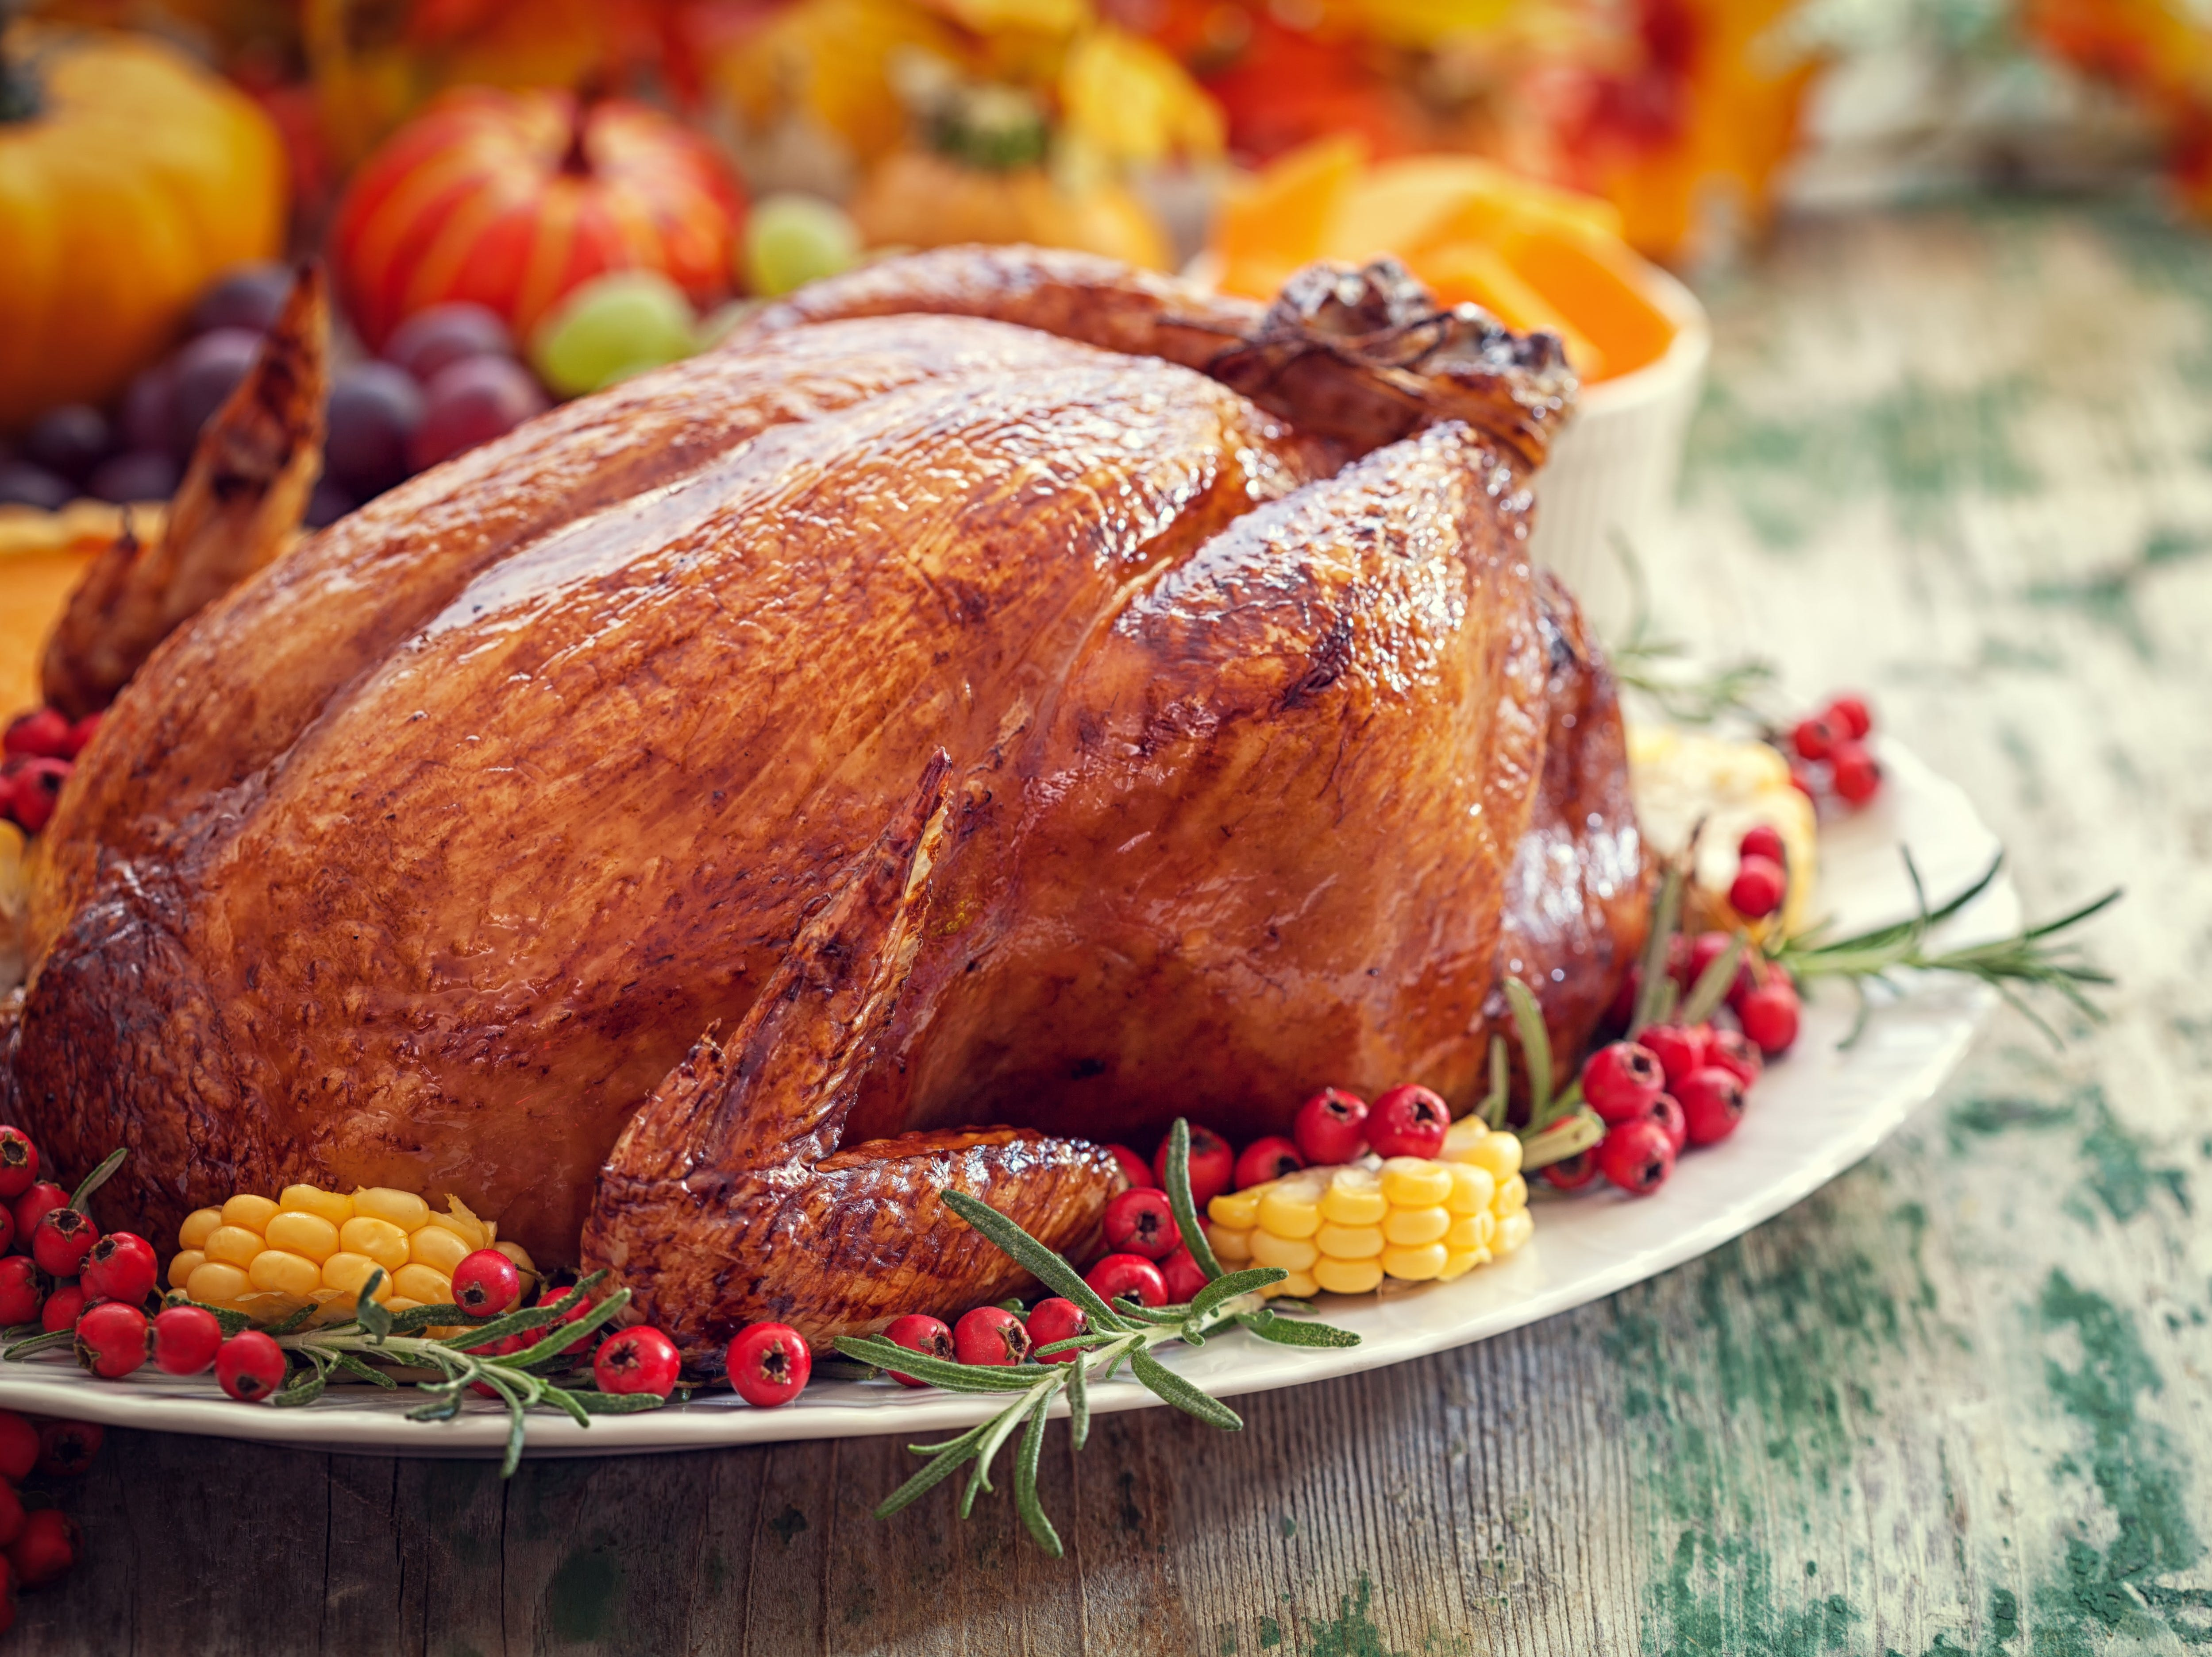 The Vineland Salvation Army's annual Turkey Drive to benefit local families in need will be held from 9 a.m. to 5 p.m. Nov. 17 at Bottino's ShopRites in Vineland, Millville, Bridgeton and Sewell.